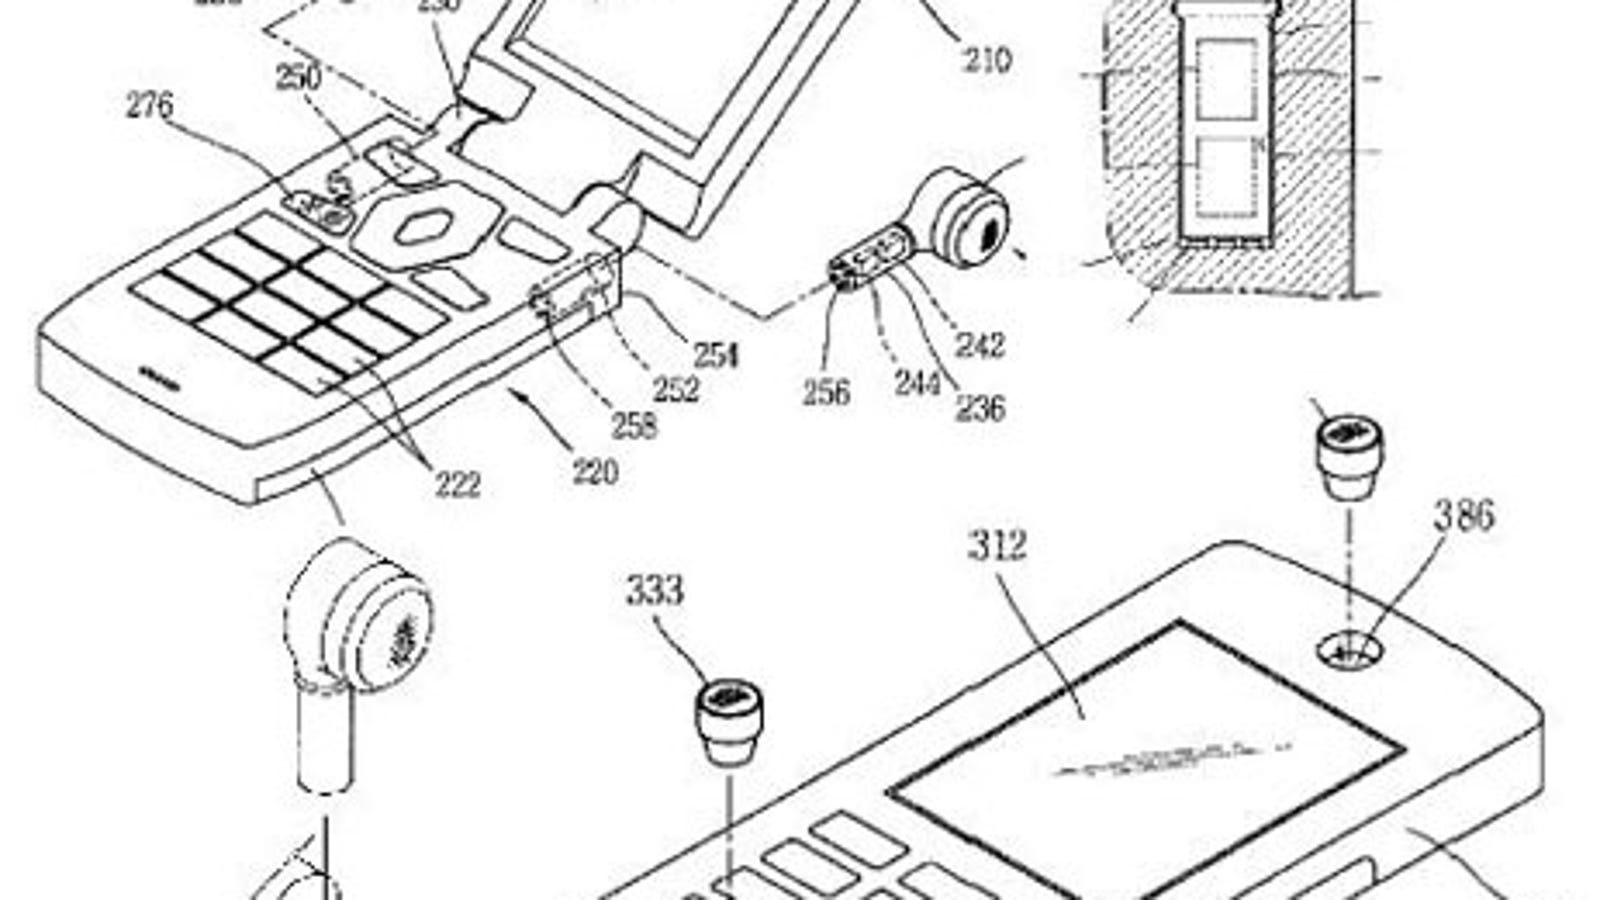 in ear earbuds for car - LG Files Patent for Way-Cool Detachable Wireless Earbuds